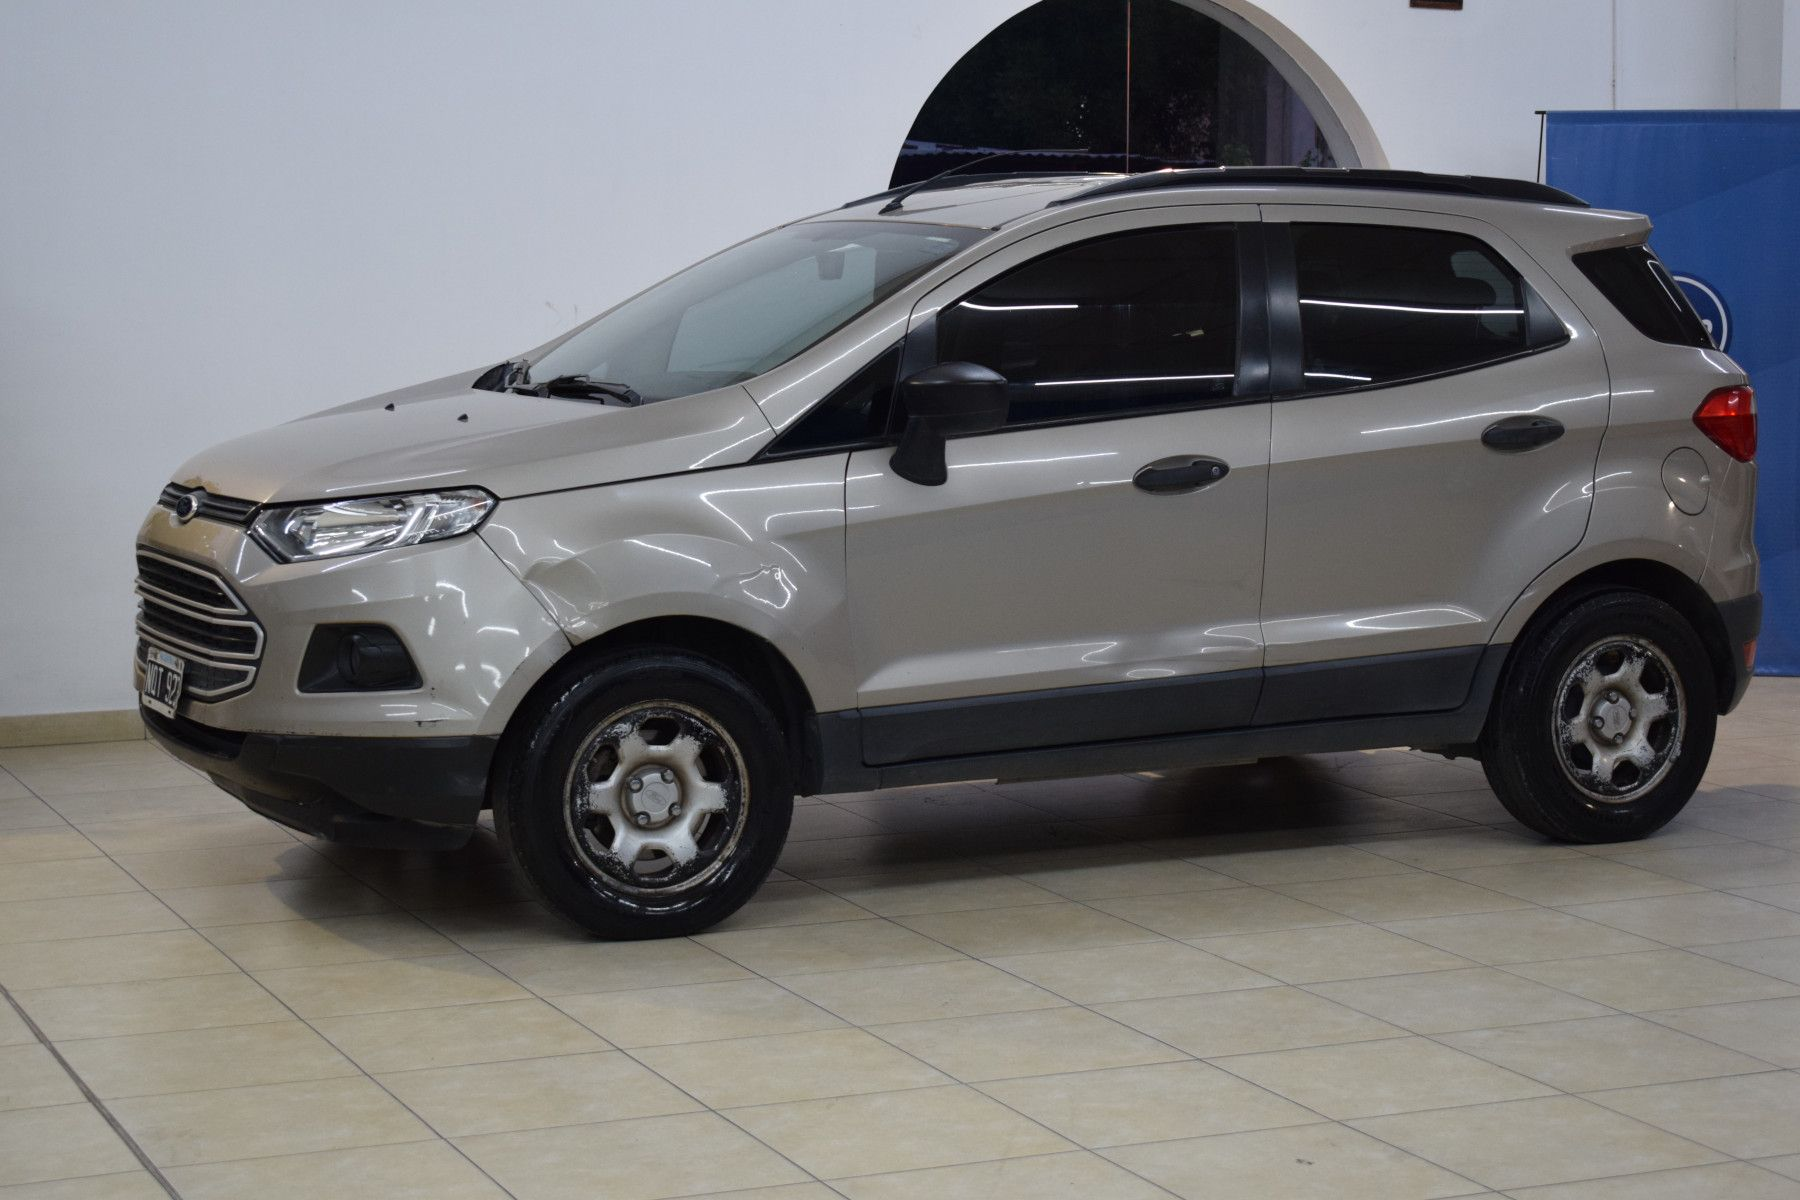 Ford ECO SPORT 1.6 SE              L 13  7